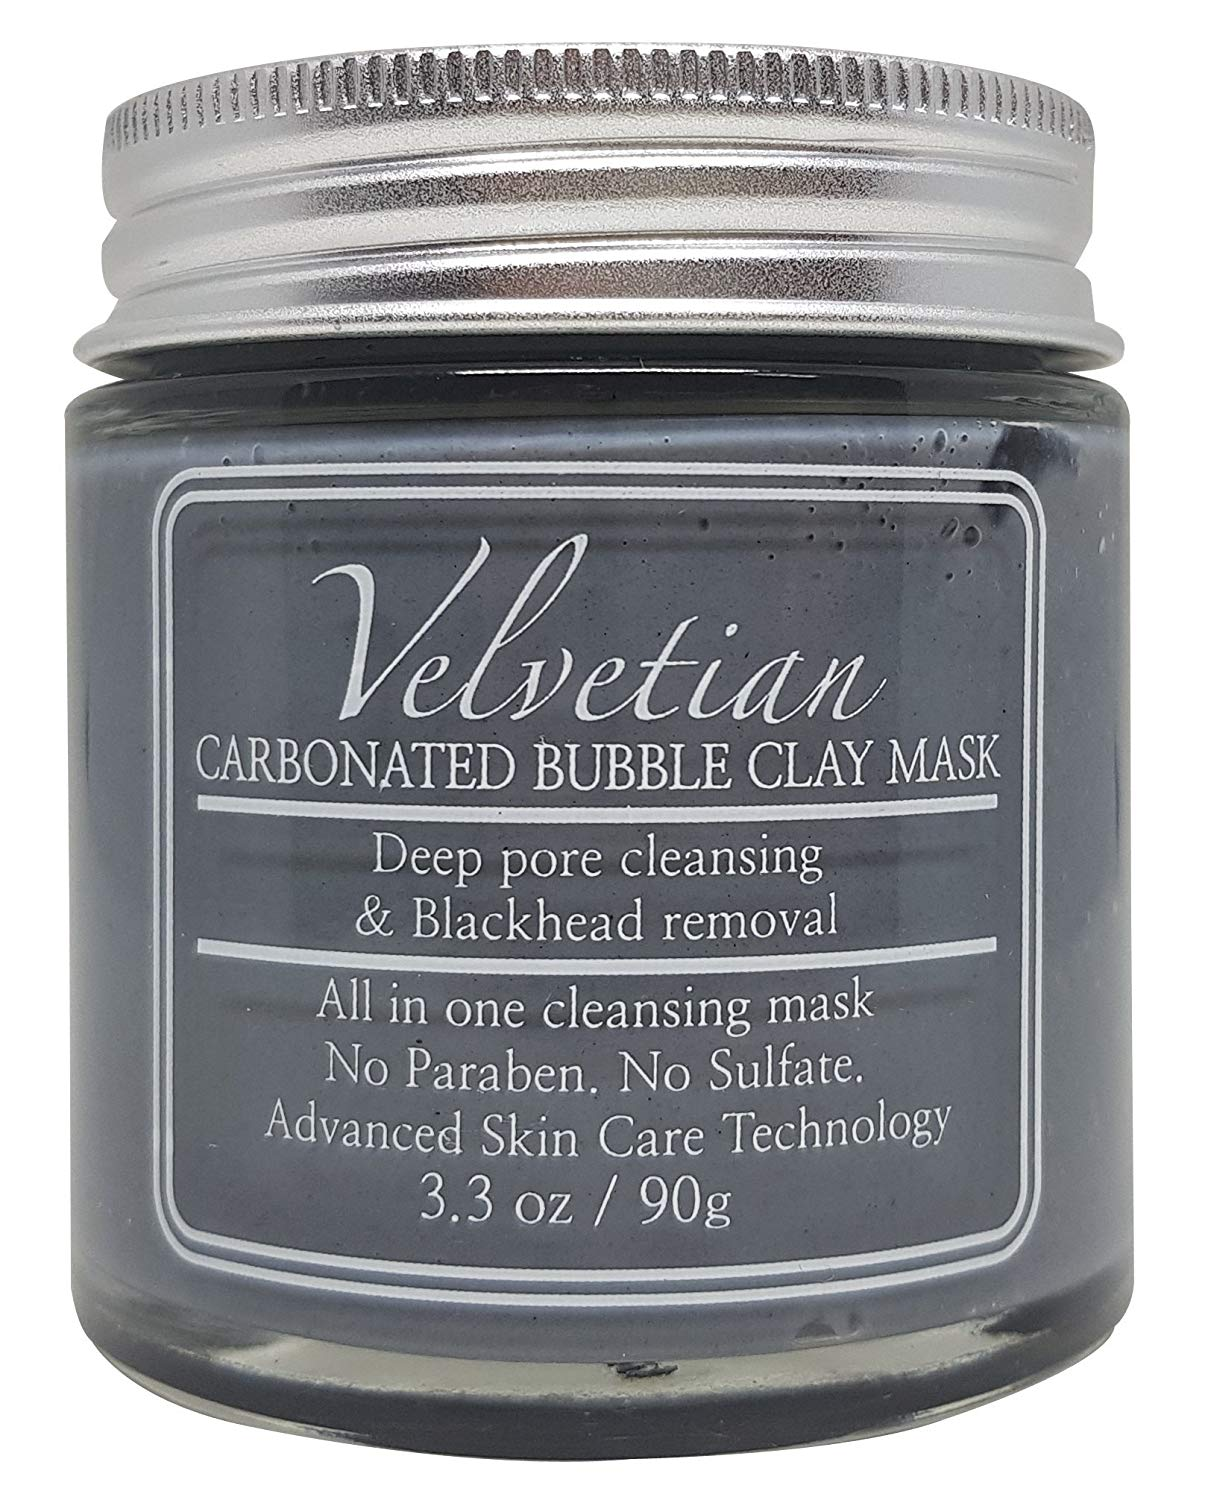 Velvetian Carbonated Bubble Clay Mask - Charcoal Facial Mask - Deep Pore Cleansing - Best for Fighting Acne, Shrinking Pore and Blackheads - 3.3oz